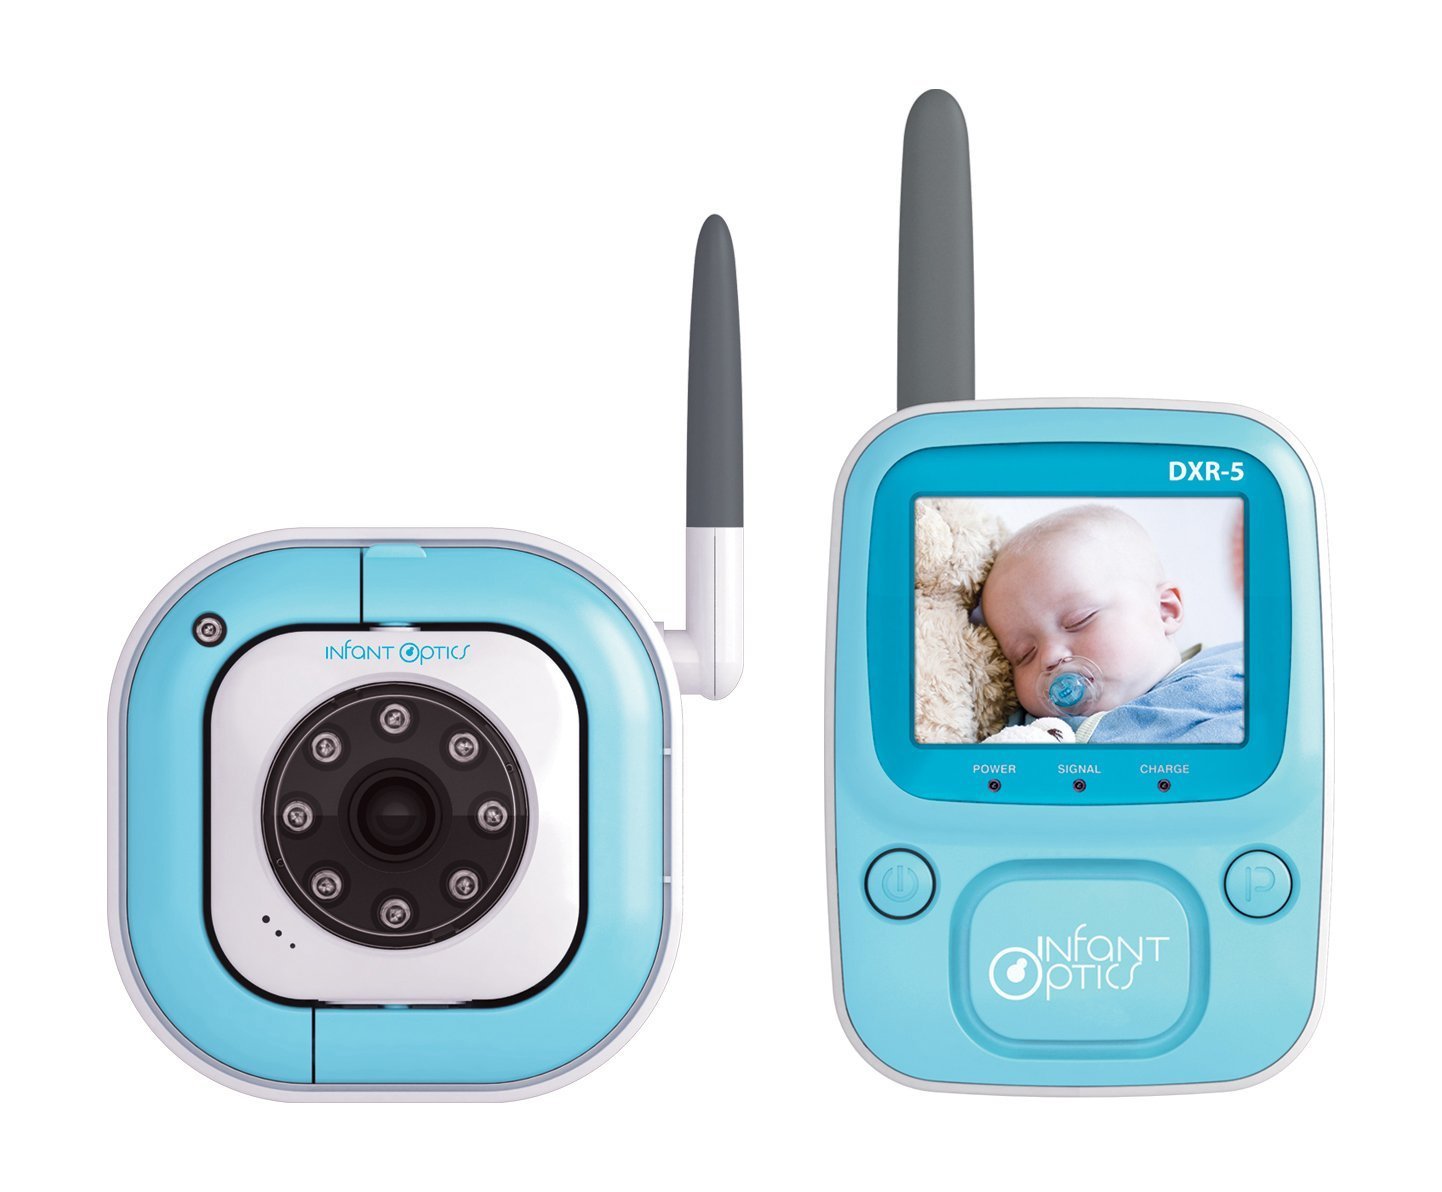 Baby Sensor Don 39t Buy Infant Optics Dxr 5 Before Reading This Review